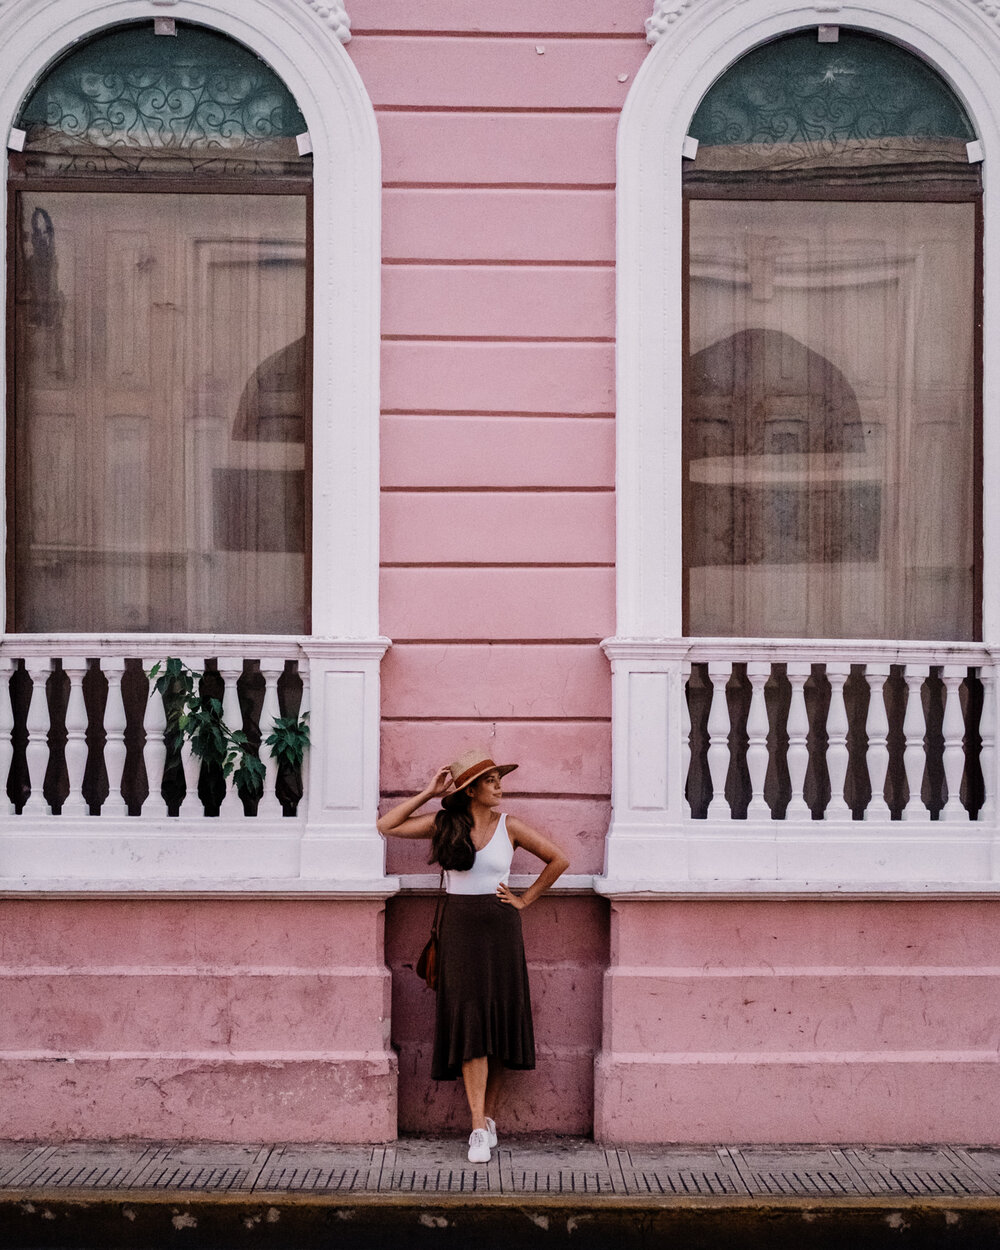 Rachel Off Duty: A Woman Standing in Front of a Pink Colonial Building in Merida, Mexico